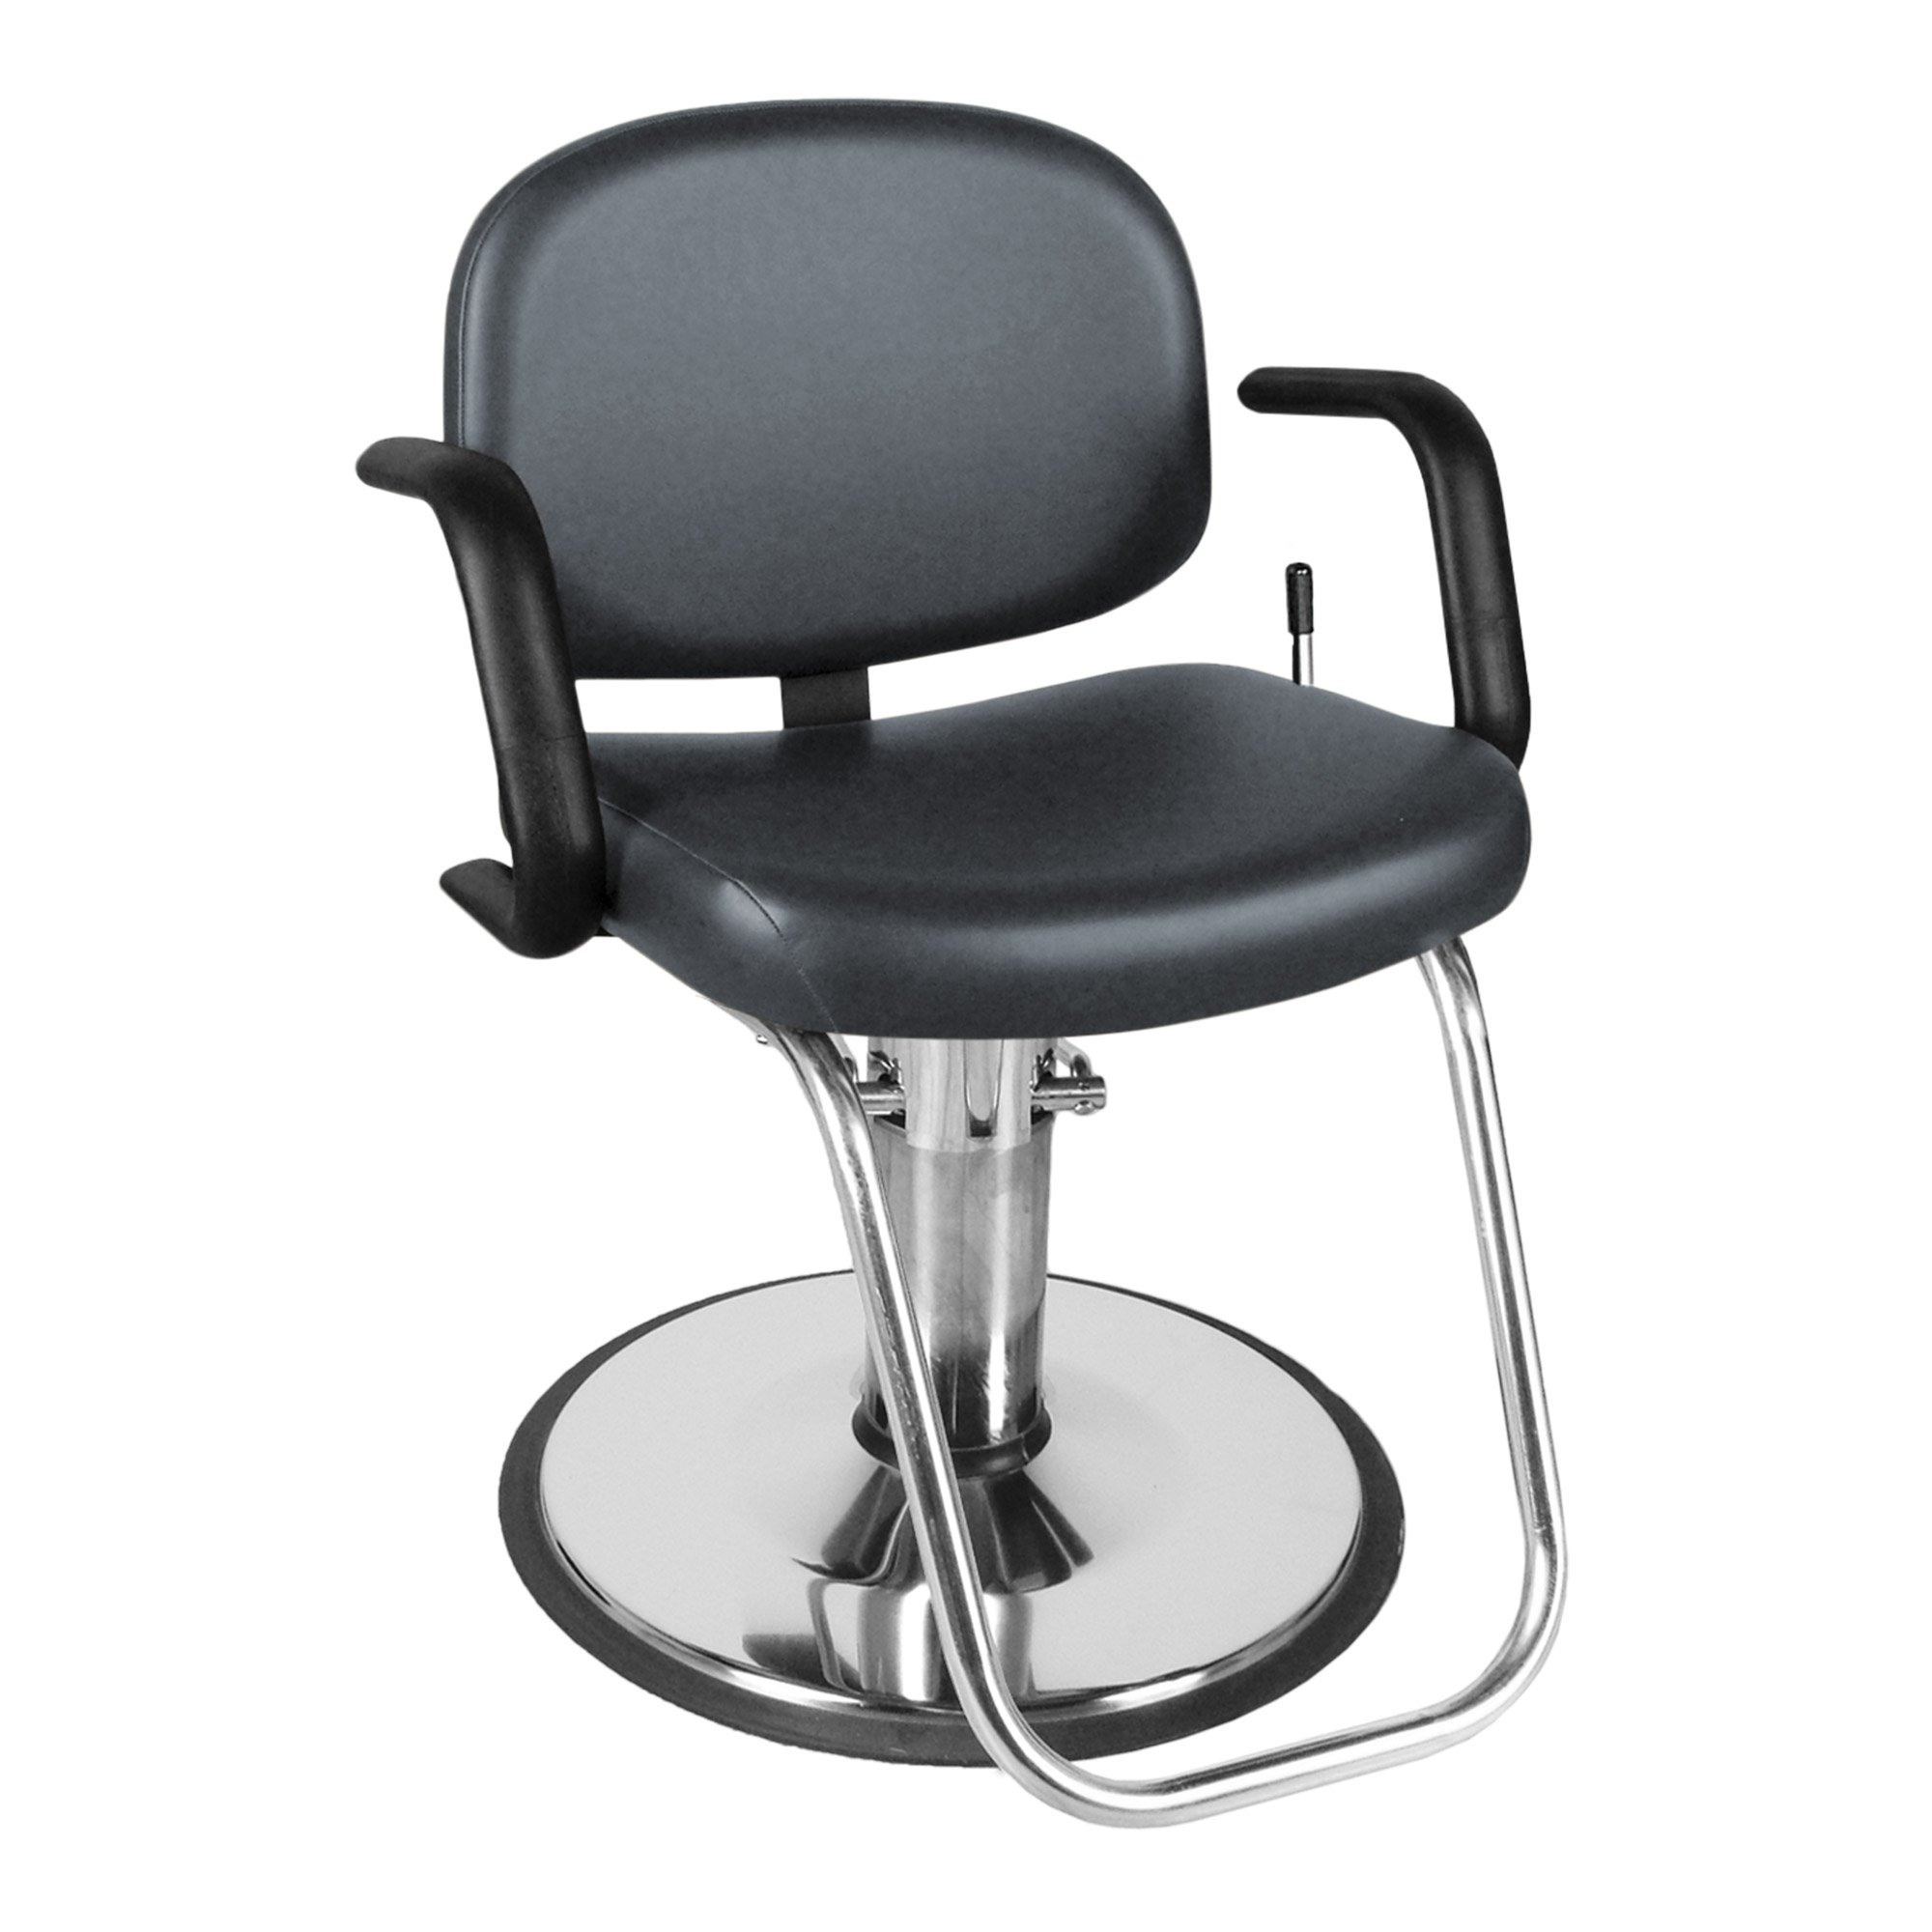 Collins 1910 JayLee All Purpose Styling Chair